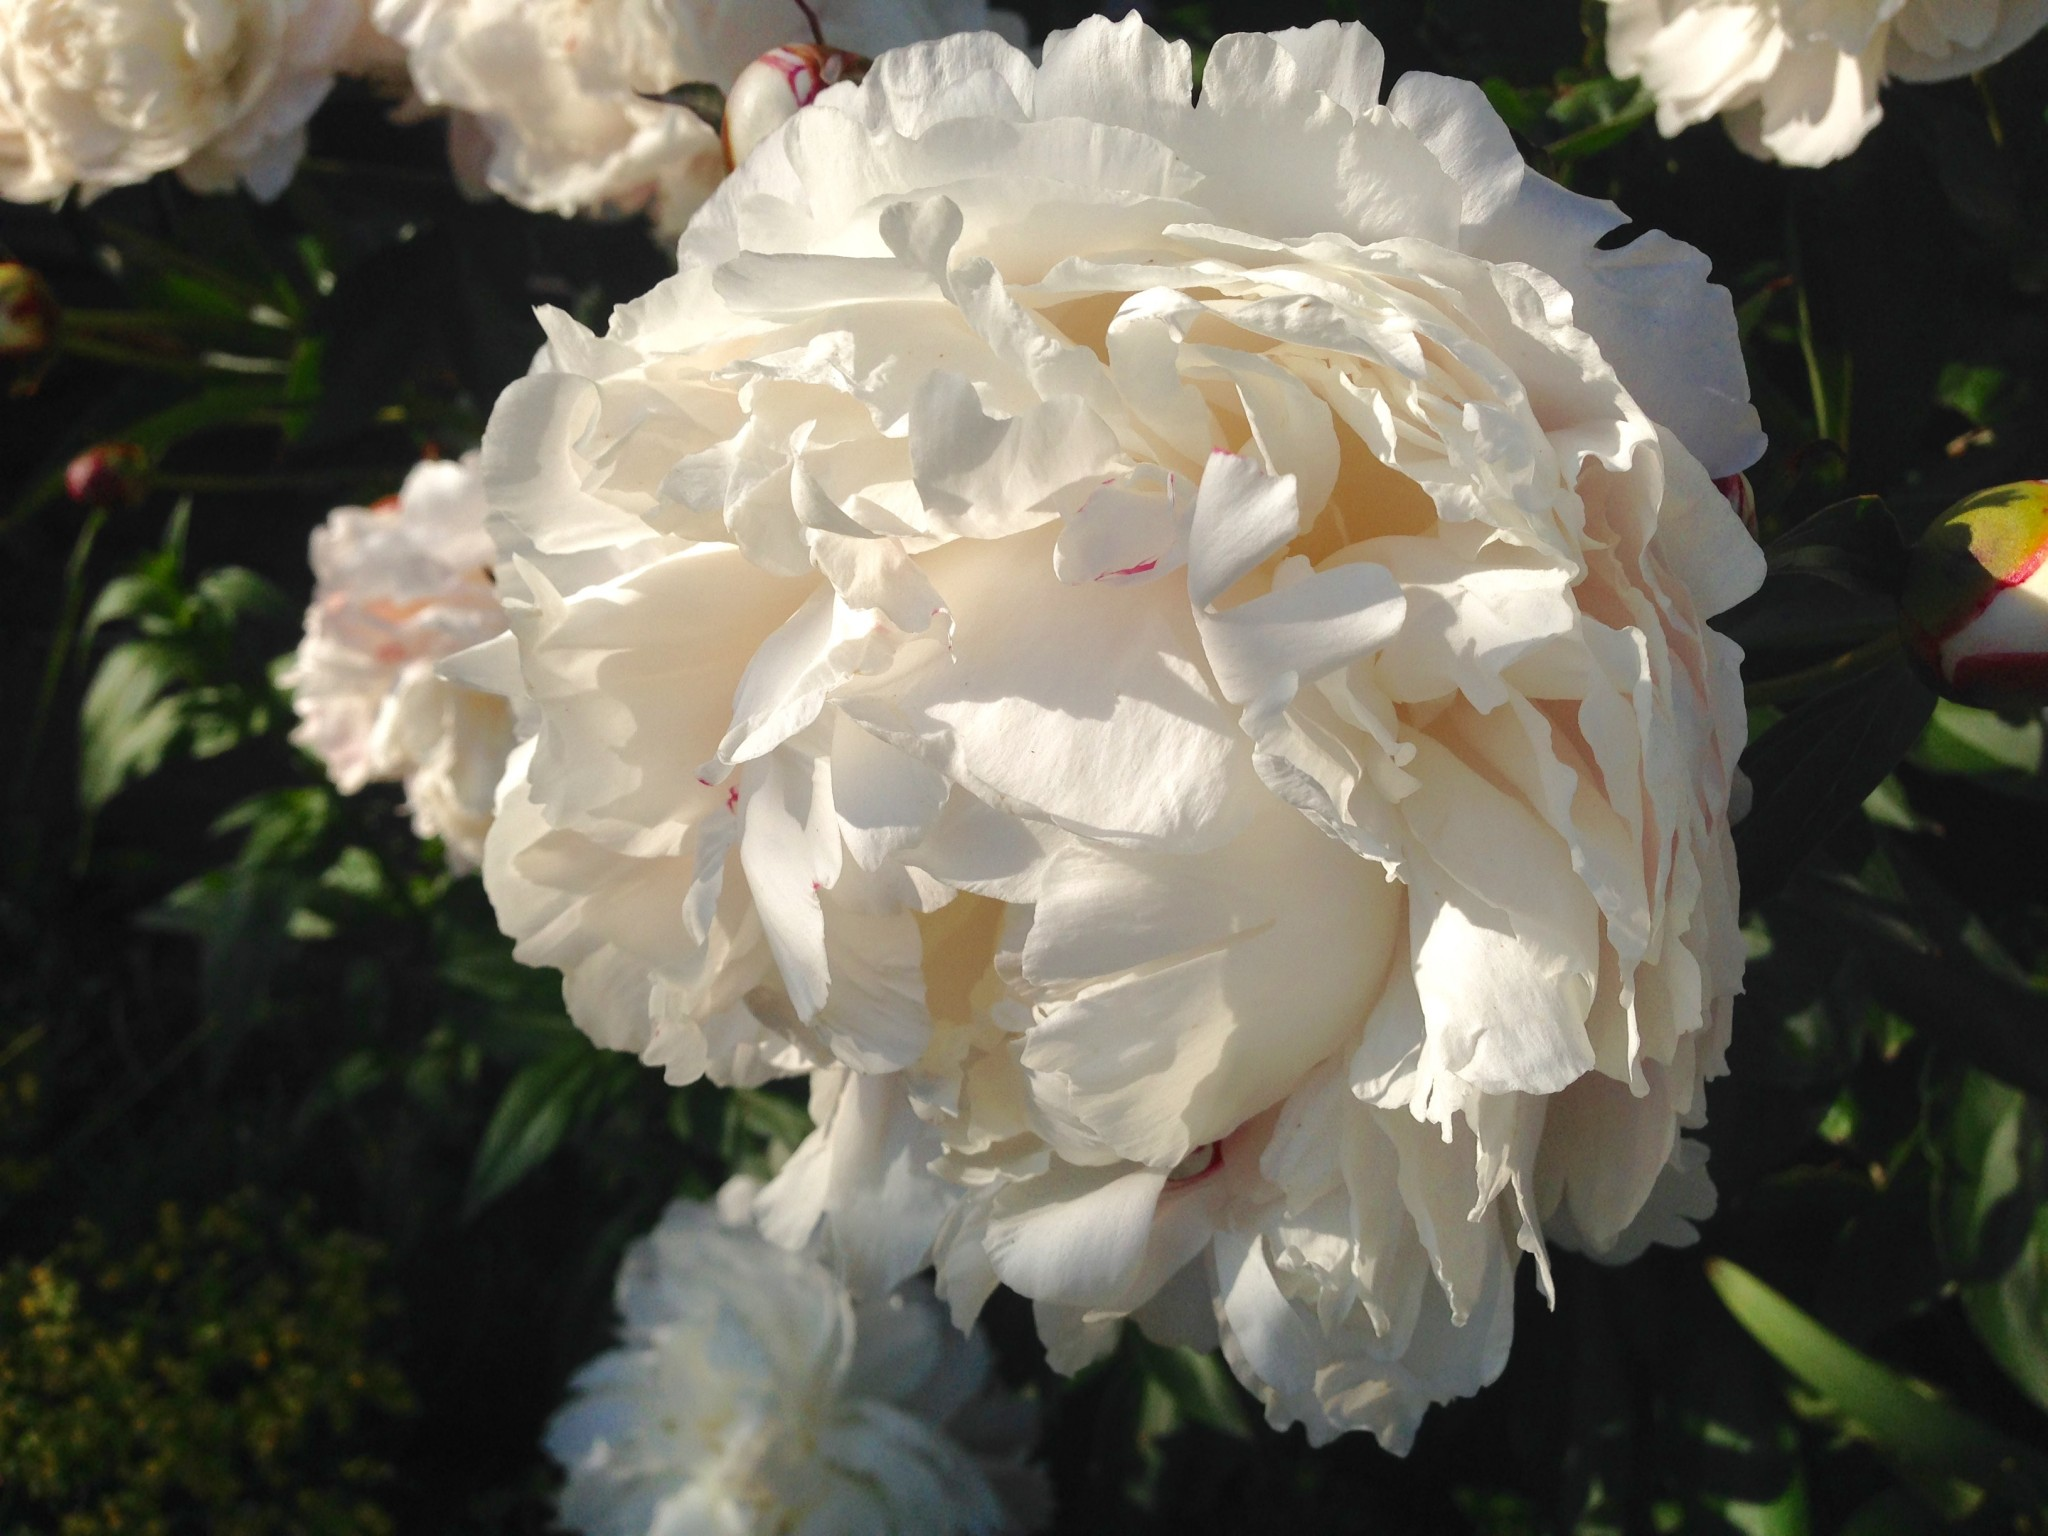 Paeonia NOID. Wouldn't it be wonderful if they bloomed on Valentine's Day.